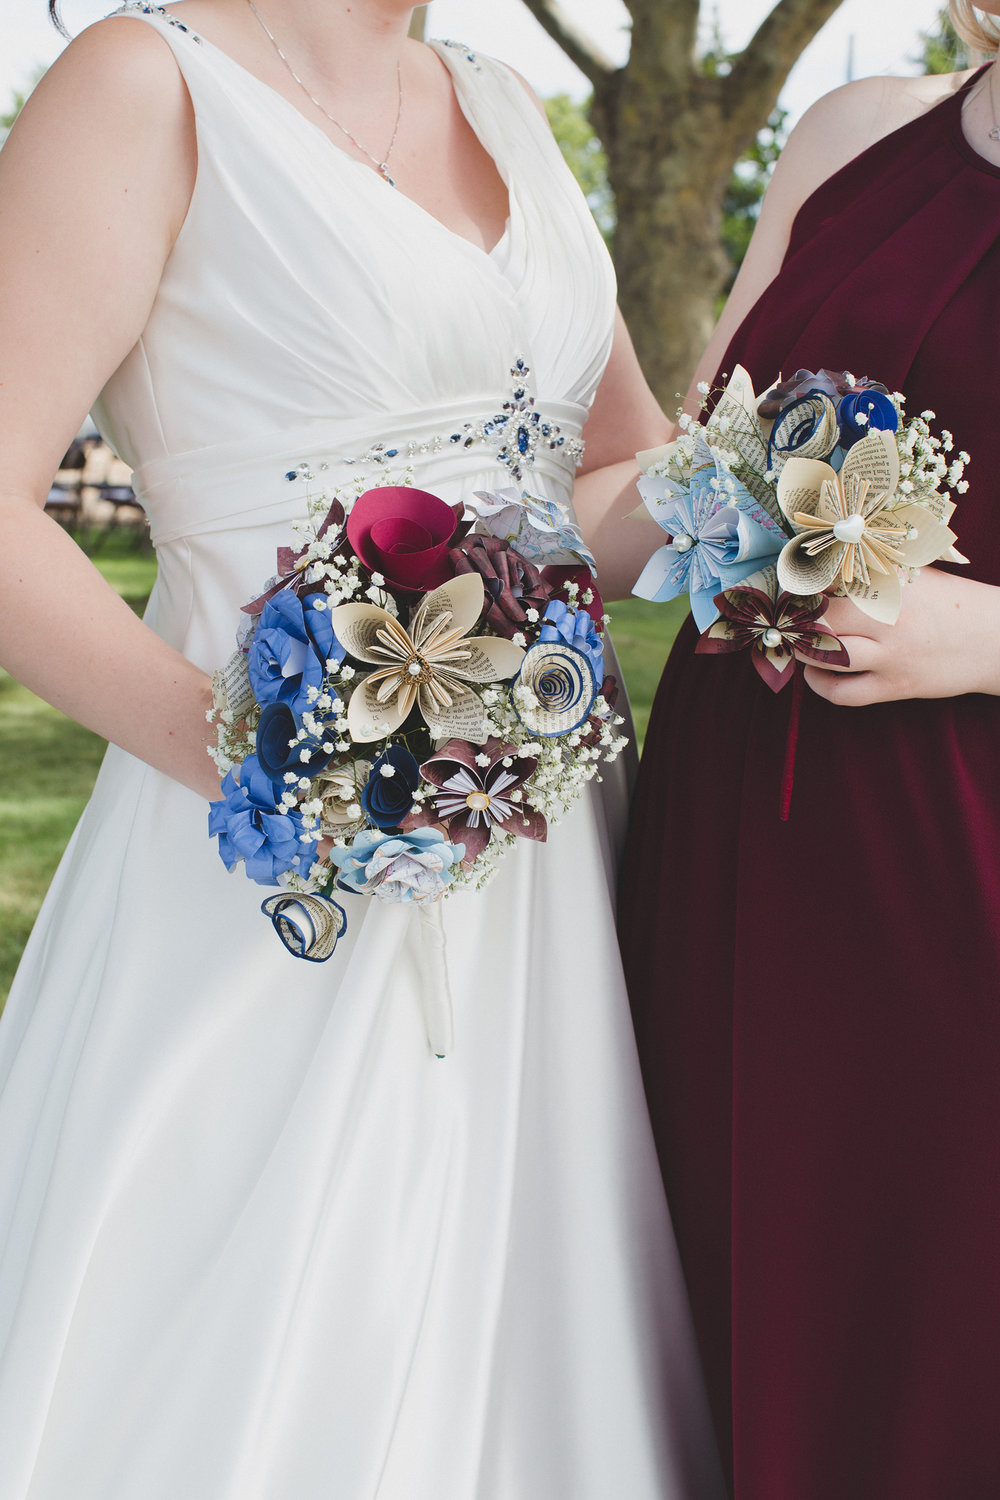 Tri Cities Wedding Photographer_Karis and Adrienne_Church wedding_Bridal Party 7 Paper flower bouquet